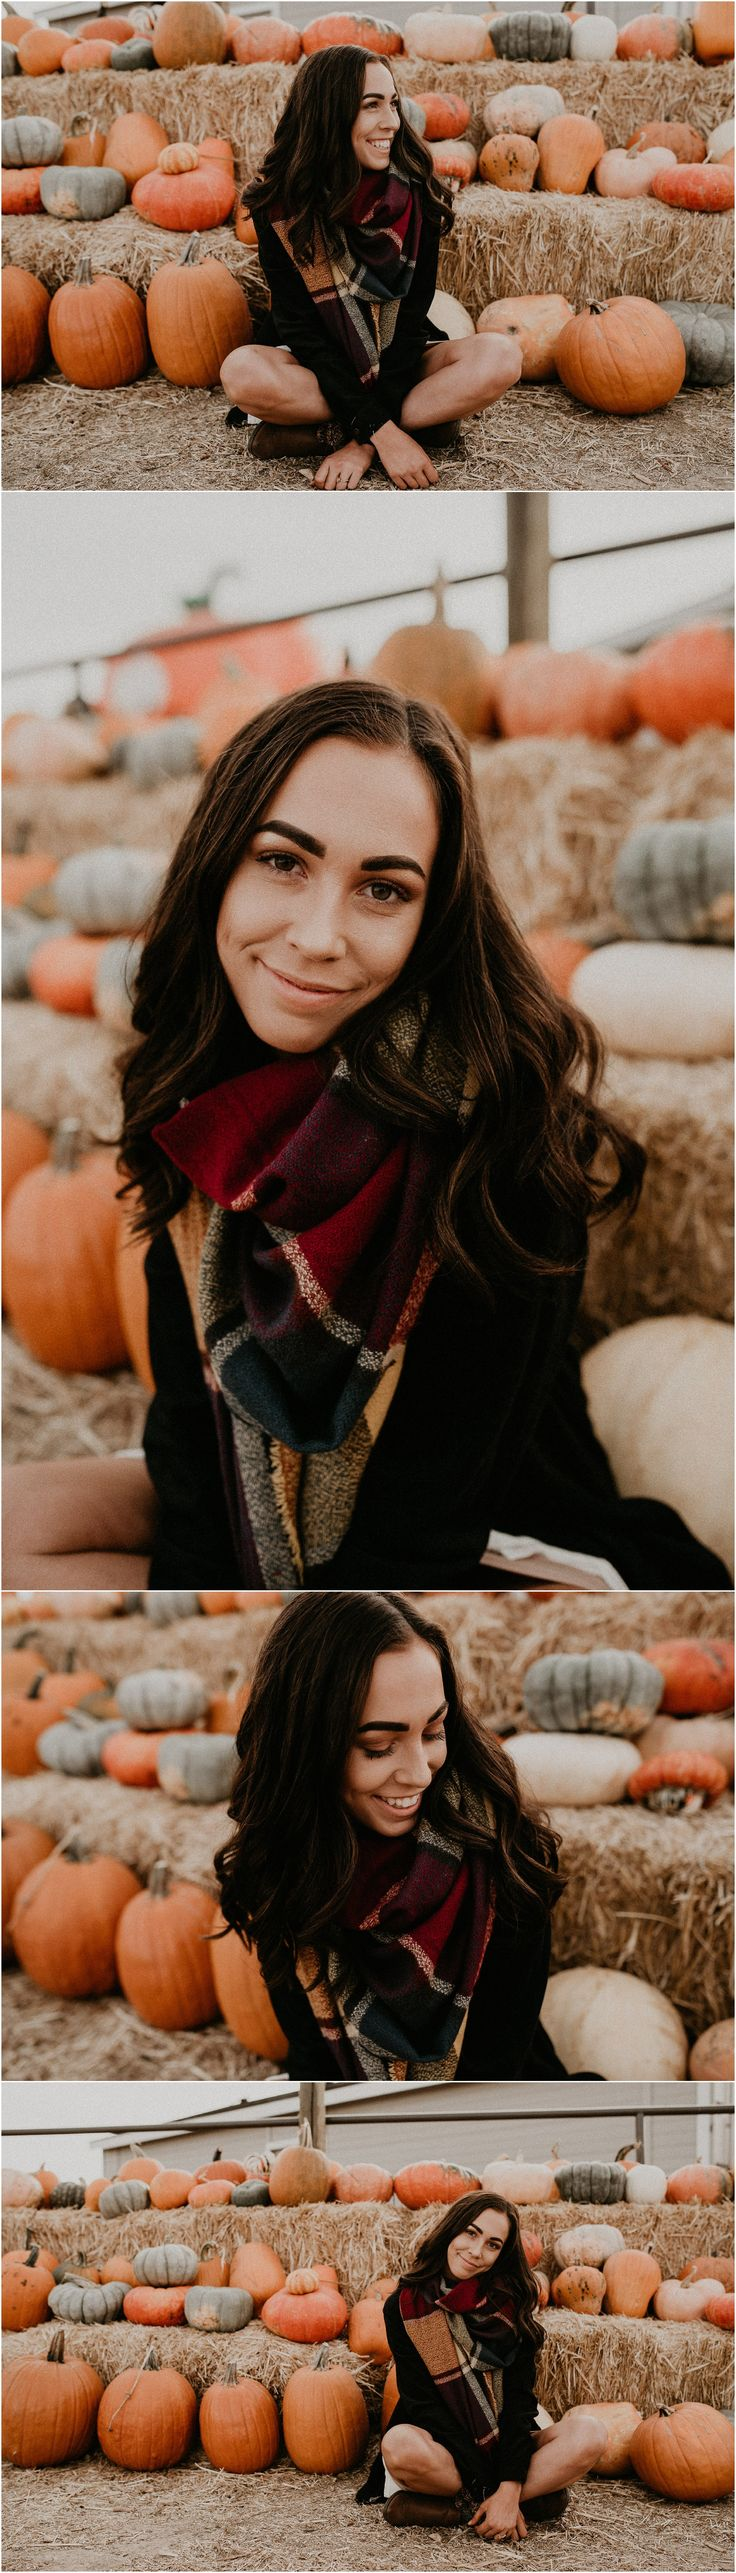 Boise Senior Photographer // Makayla Madden Photography // Idaho Farmstead // Corn Maze // Fall Senior Outfit Ideas Inspiration // Pumpkin Patch // Senior Photography // Senior Pictures // Senior Girl // Fall Aesthetic // Pumpkins //